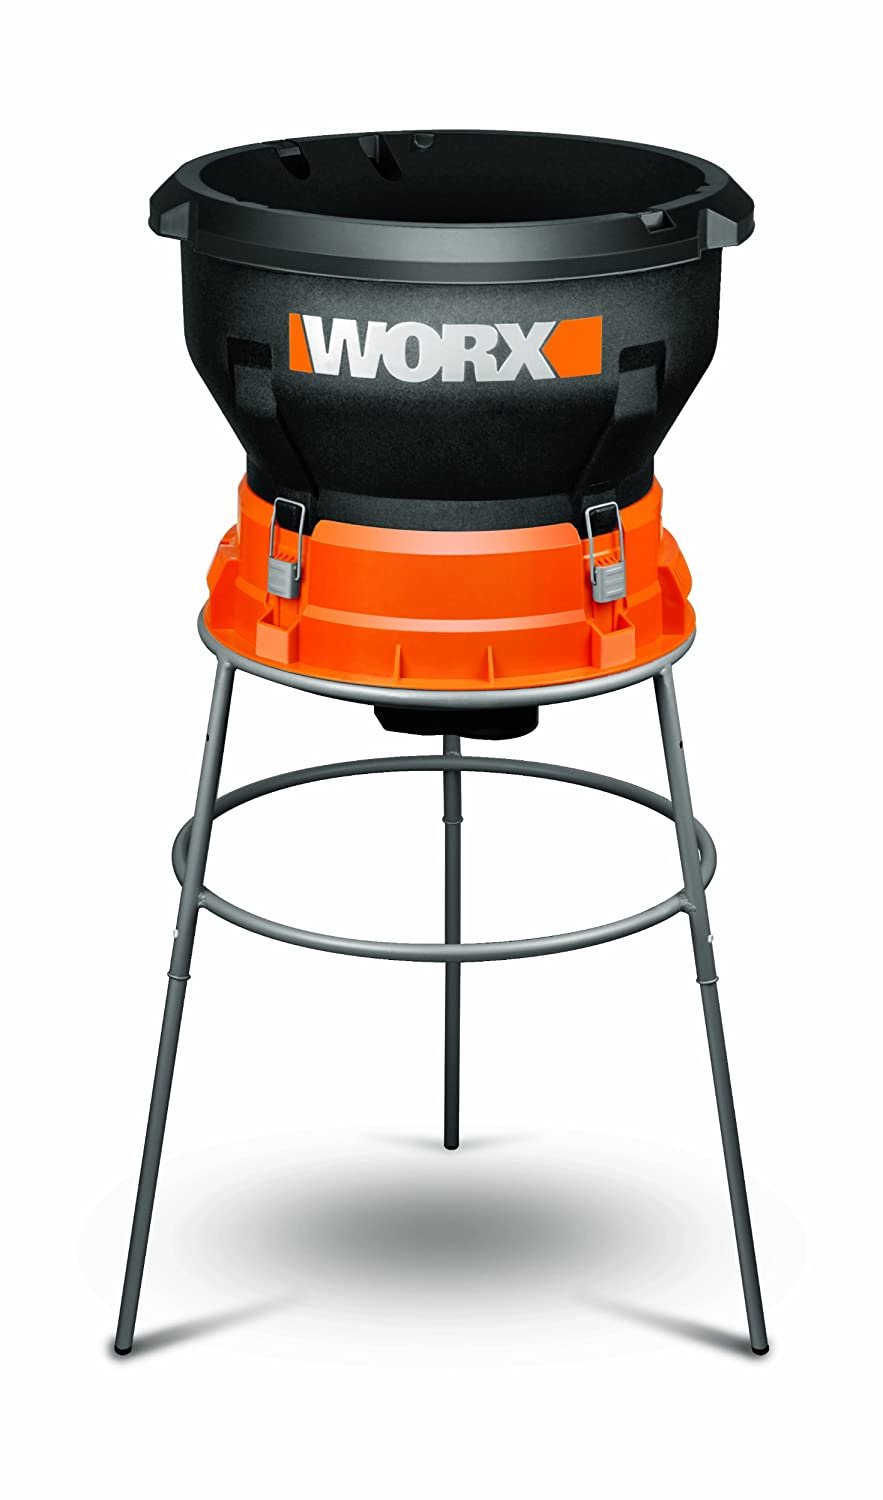 best leaf shredder - WORX 13 Amp HP Electric Leaf Mulcher